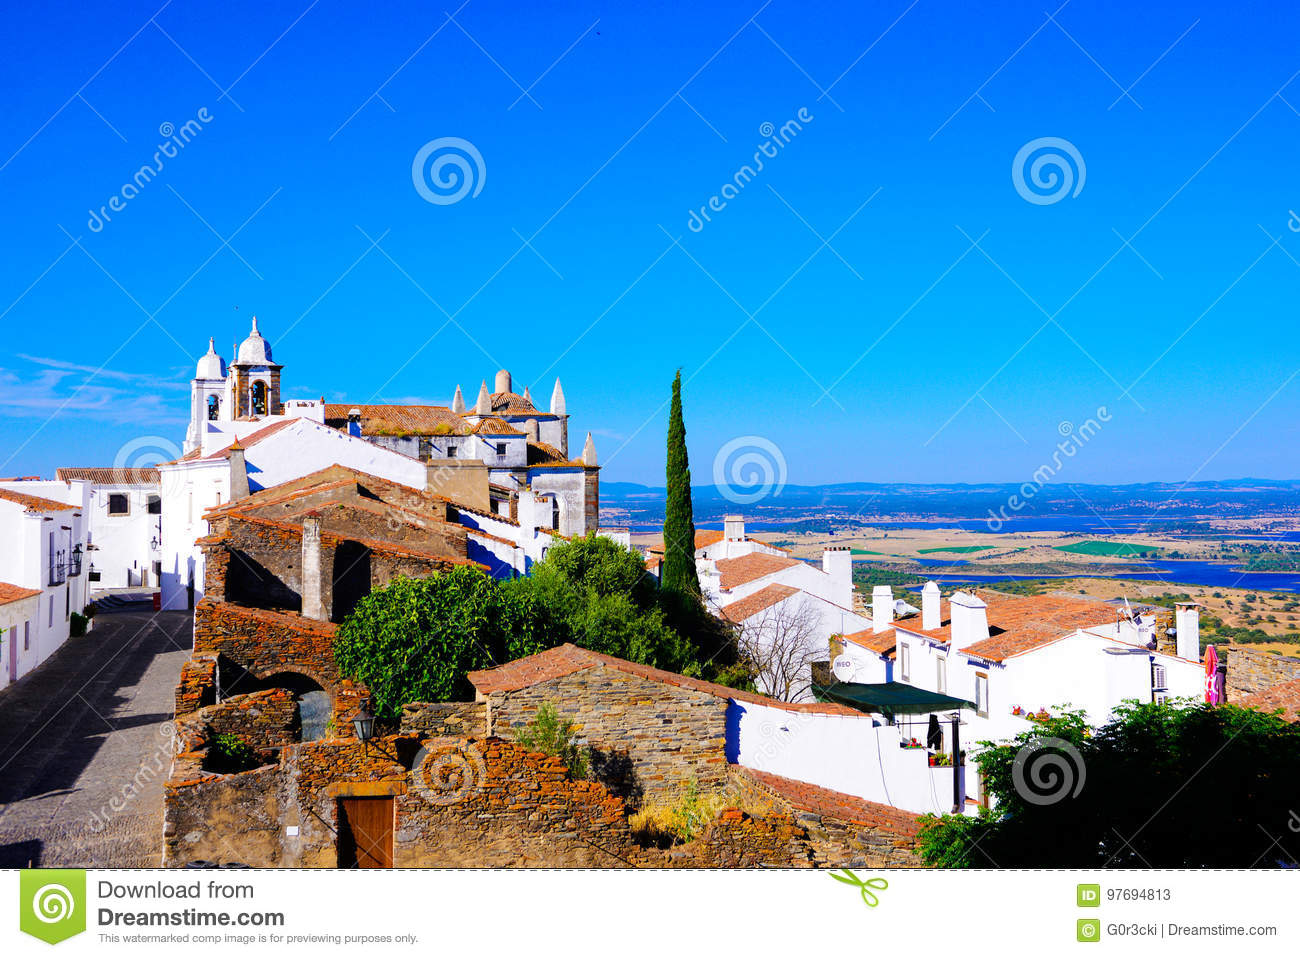 Castle View - Picturesque Village, Monsaraz - Alentejo Plain, South Portugal Landscape